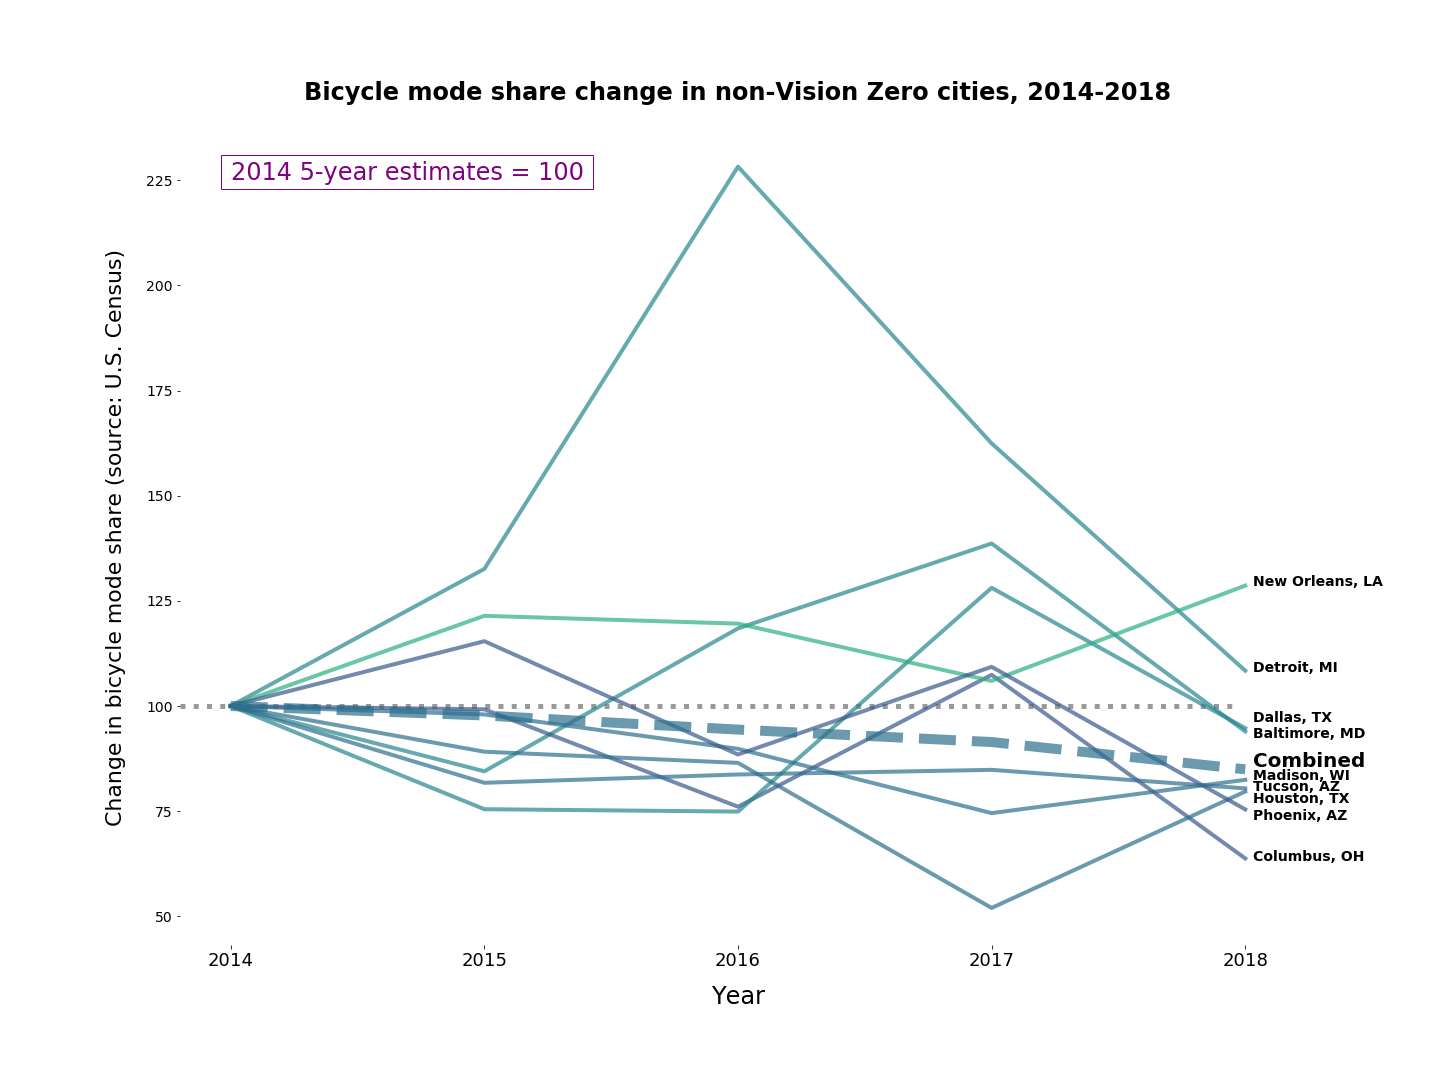 Chart showing change in mode share in non-Vision Zero cities from 2014-2018, showing a slight downward trend overall.